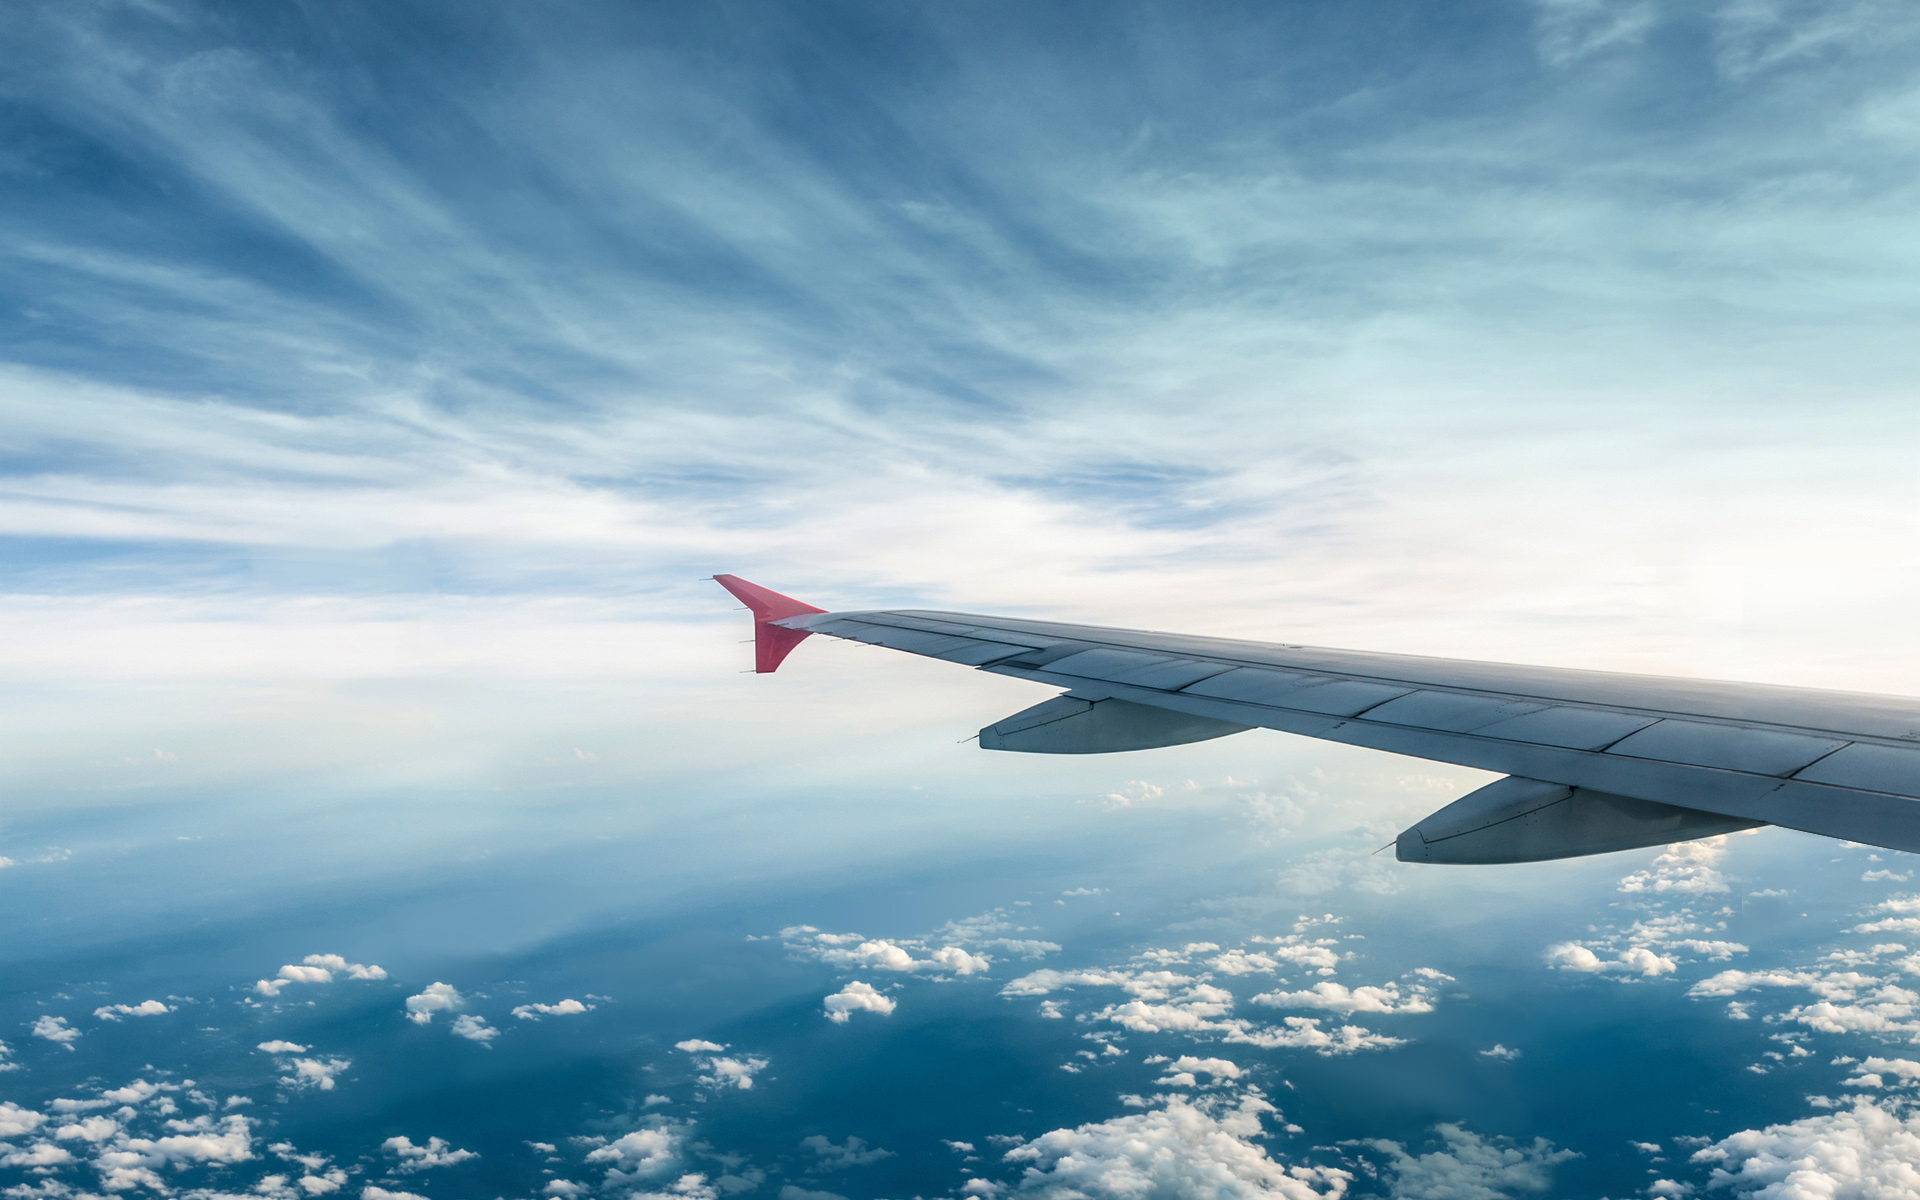 Wallpaper 3d Nature 1280x1024 Airplane Wing Wallpapers Wallpapers Hd